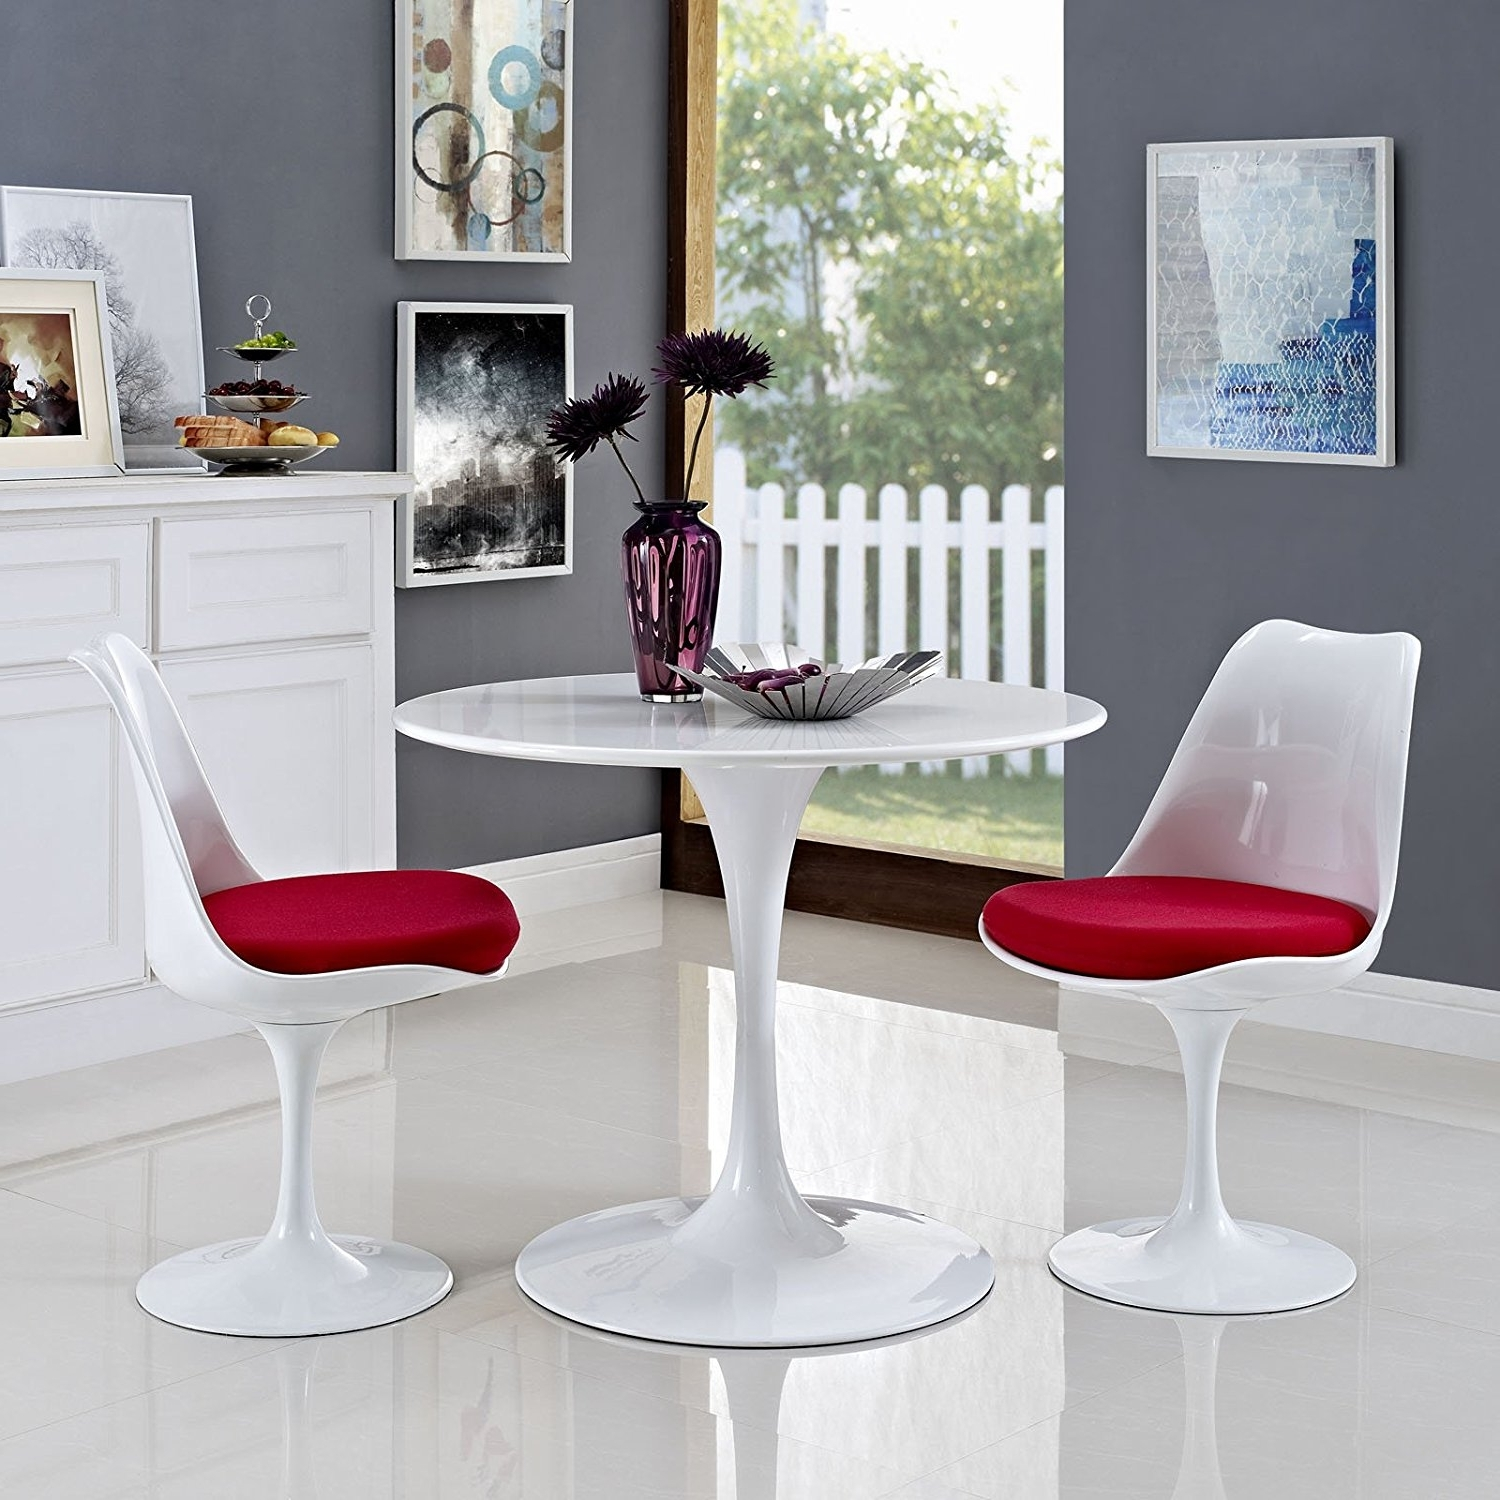 Most Recent Twenty Dining Tables That Work Great In Small Spaces – Living In A Throughout Pisa Dining Tables (View 24 of 25)